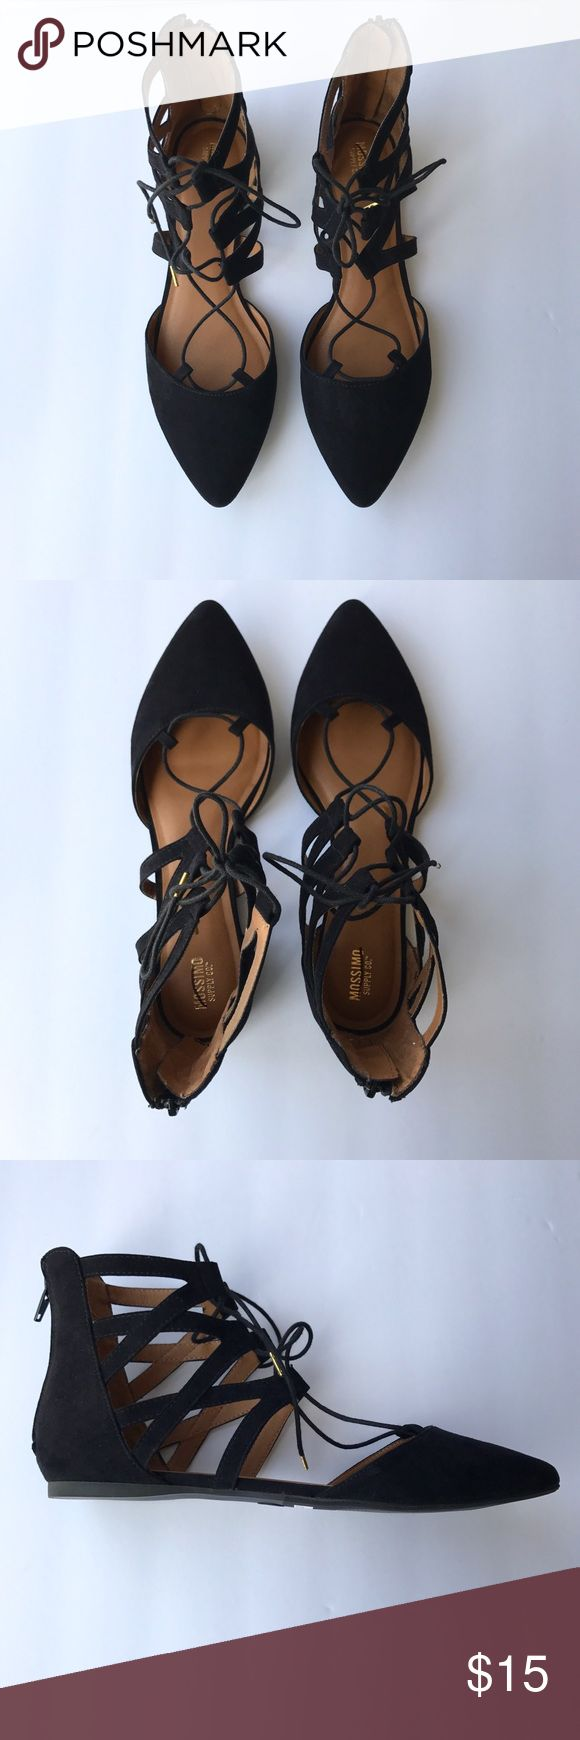 • Mossimo • black lace up flats Gorgeous strappy shoes are black and so stylish! Very comfortable and elegant. Can be dressed up or dress down. Mossimo Supply Co. Shoes Flats & Loafers